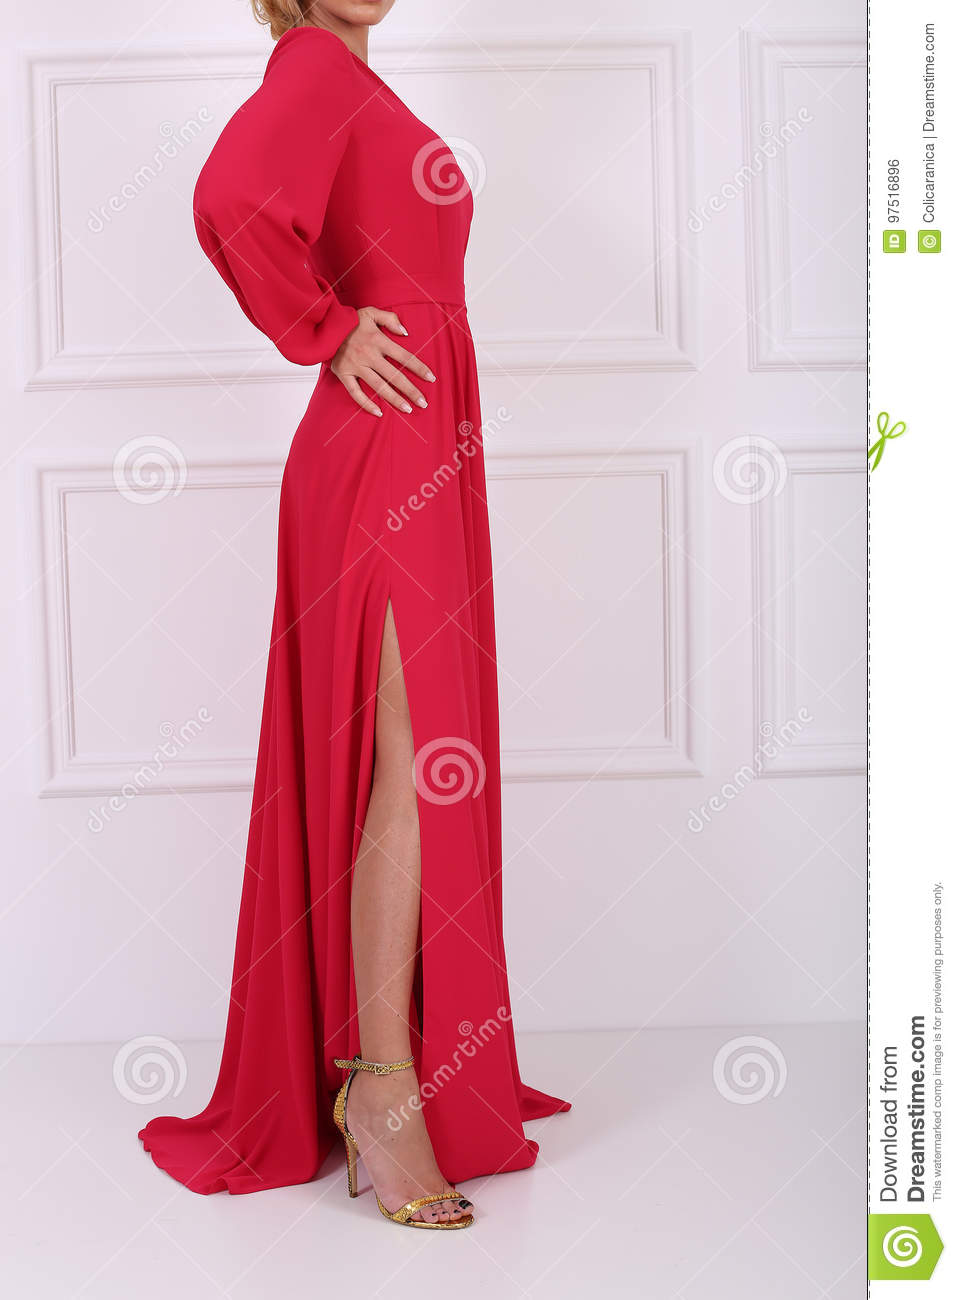 Belle en robe rouge